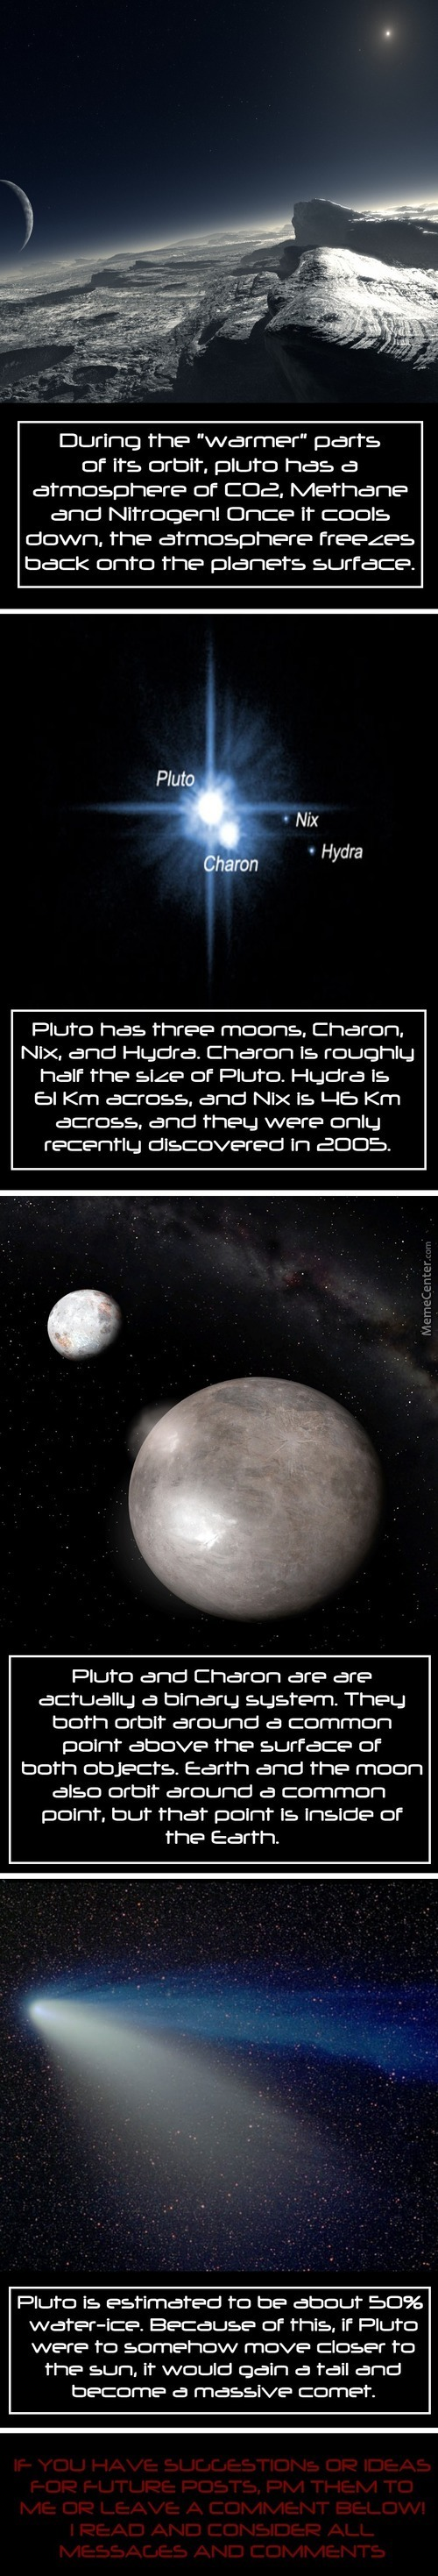 Science Porn: Pluto Facts